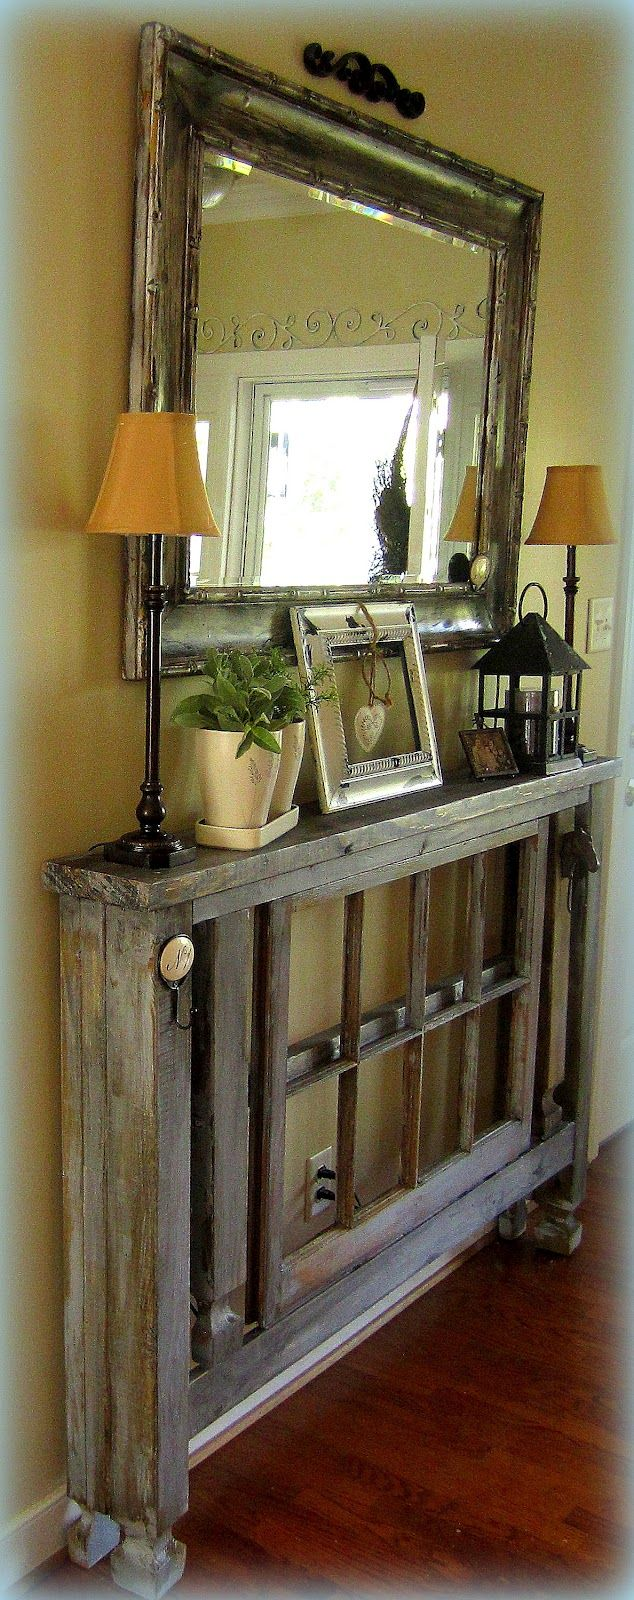 DIY instructions for building the entry way table